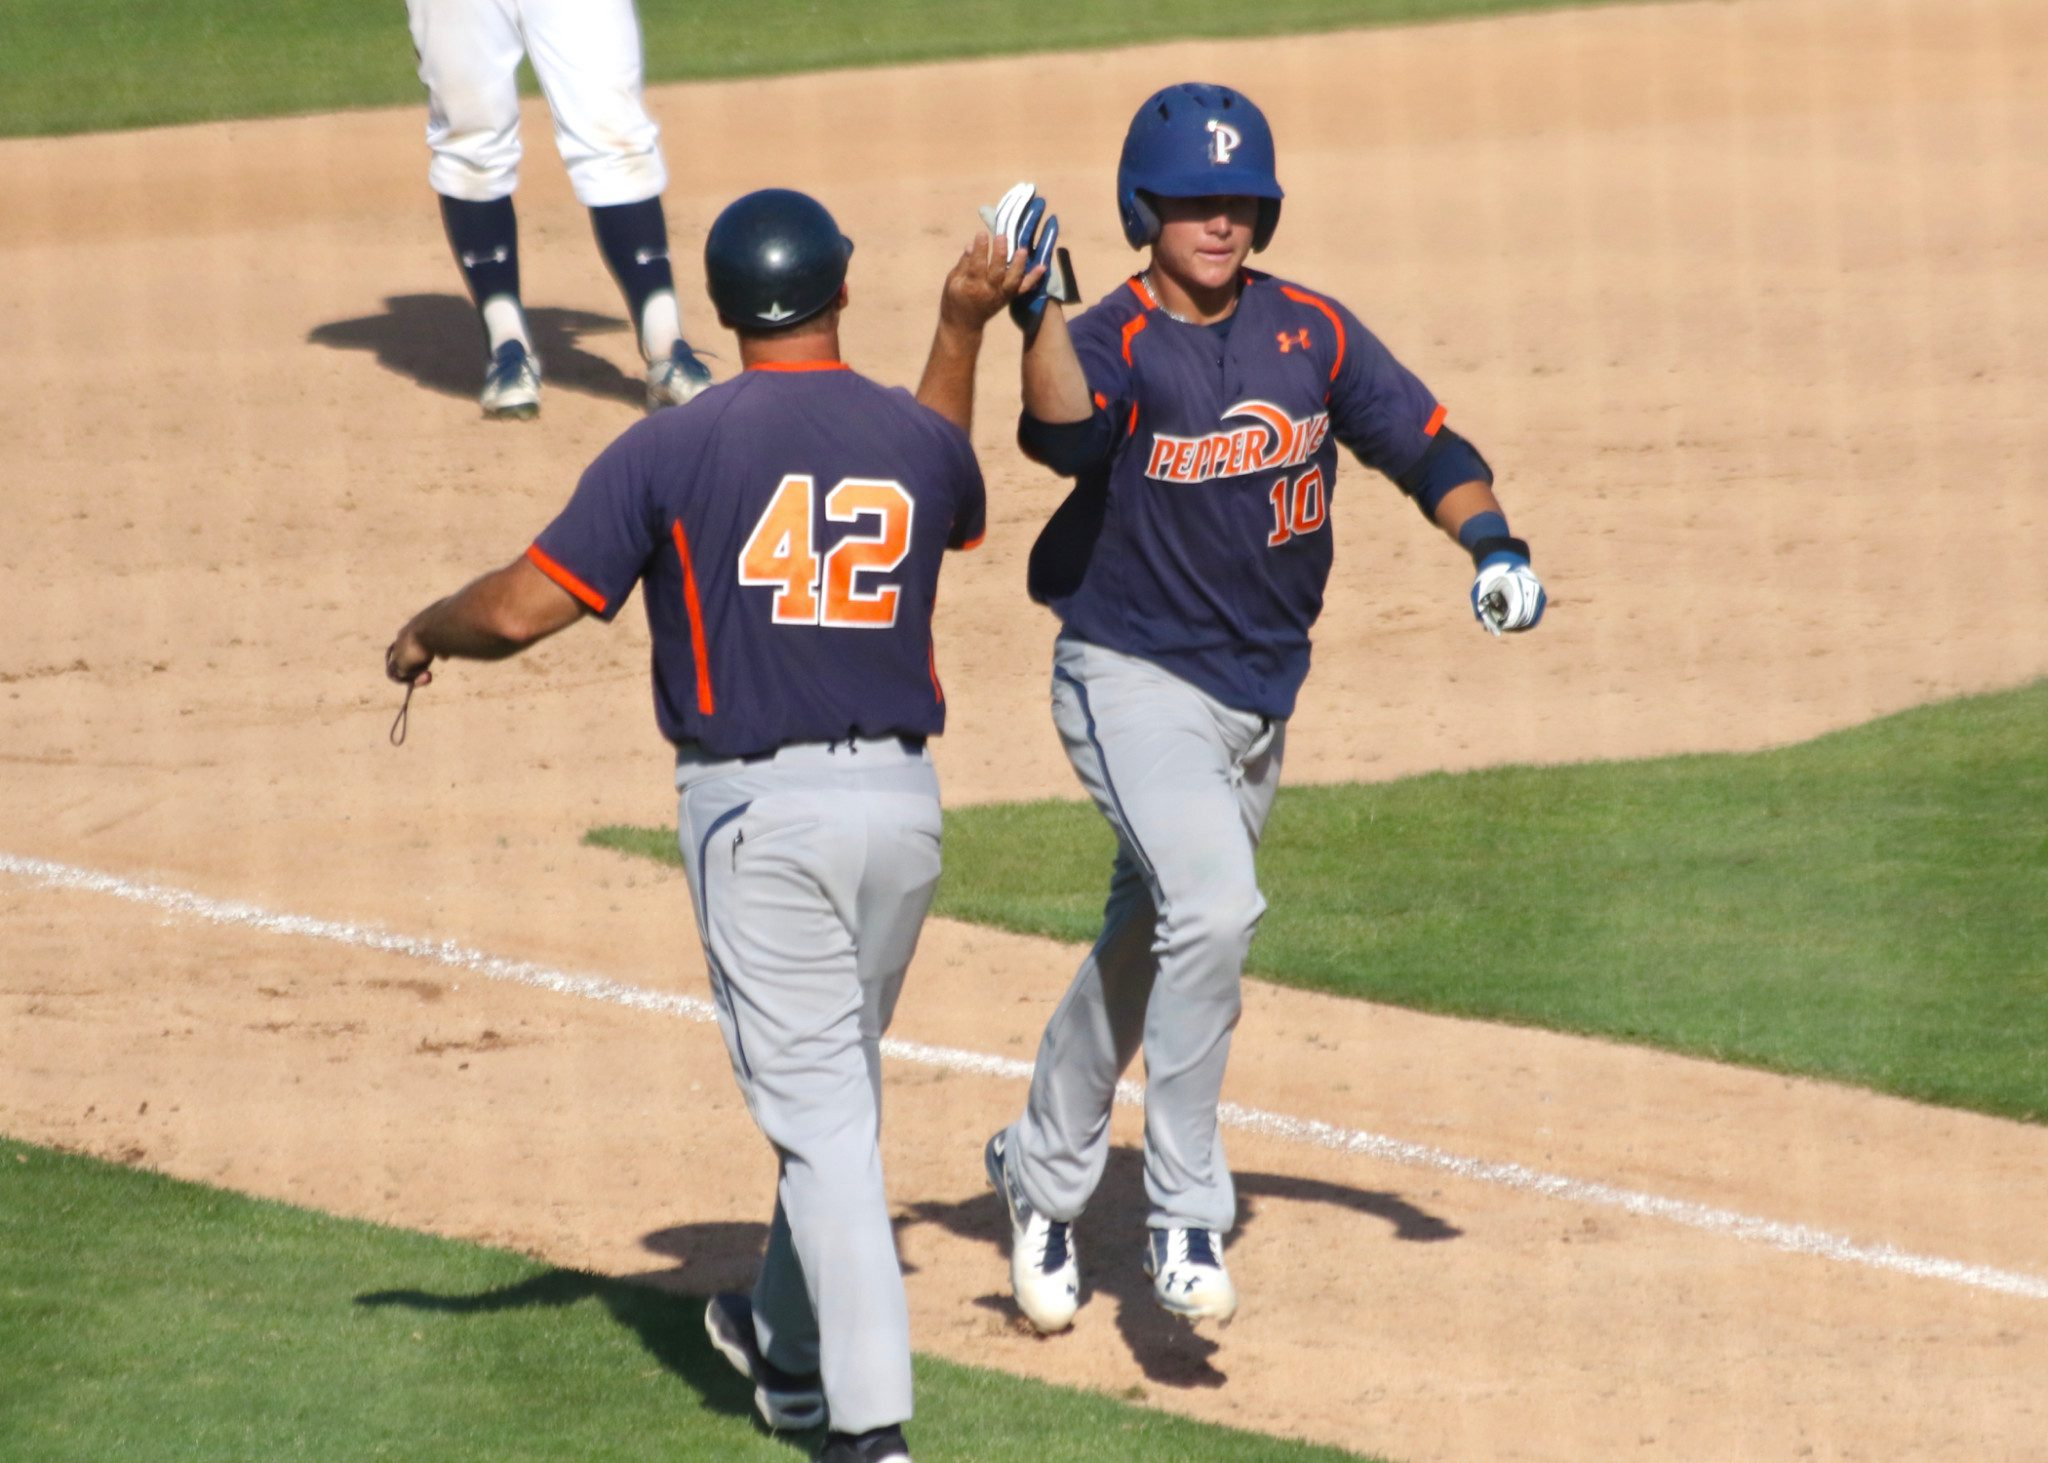 Chris Fornaci, Pepperdine